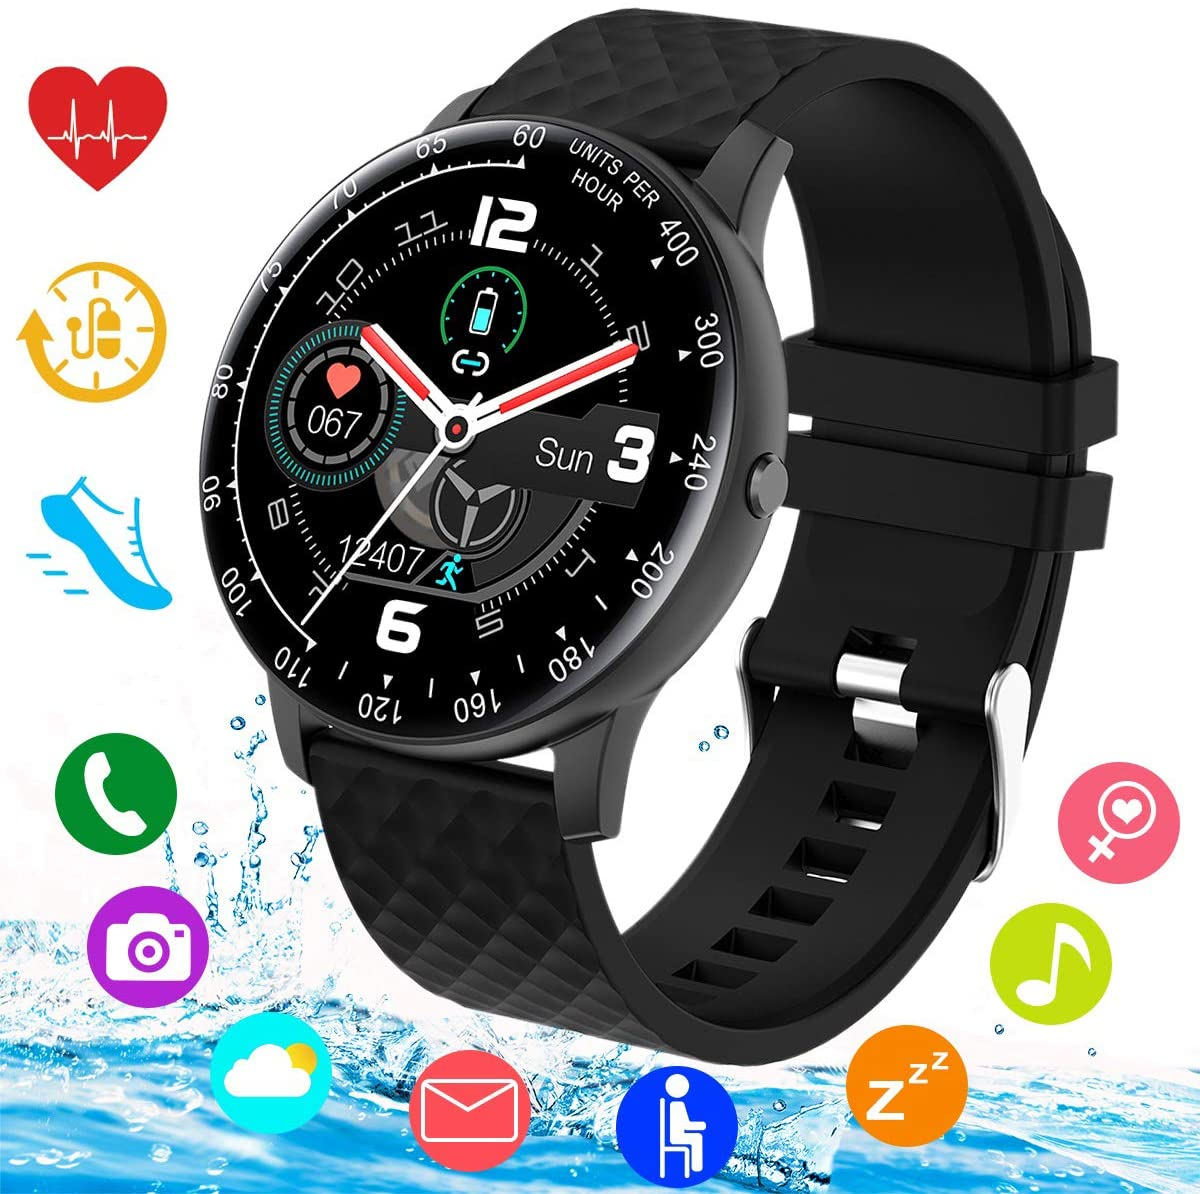 Smart Watch,Smartwatch for Android Phones,IP67 Waterproof Sport Fitness Watch with Blood Pressure Heart Rate Monitor Activity Tracker Bluetooth Smartwatches with Calorie for Samsung iOS Women Men